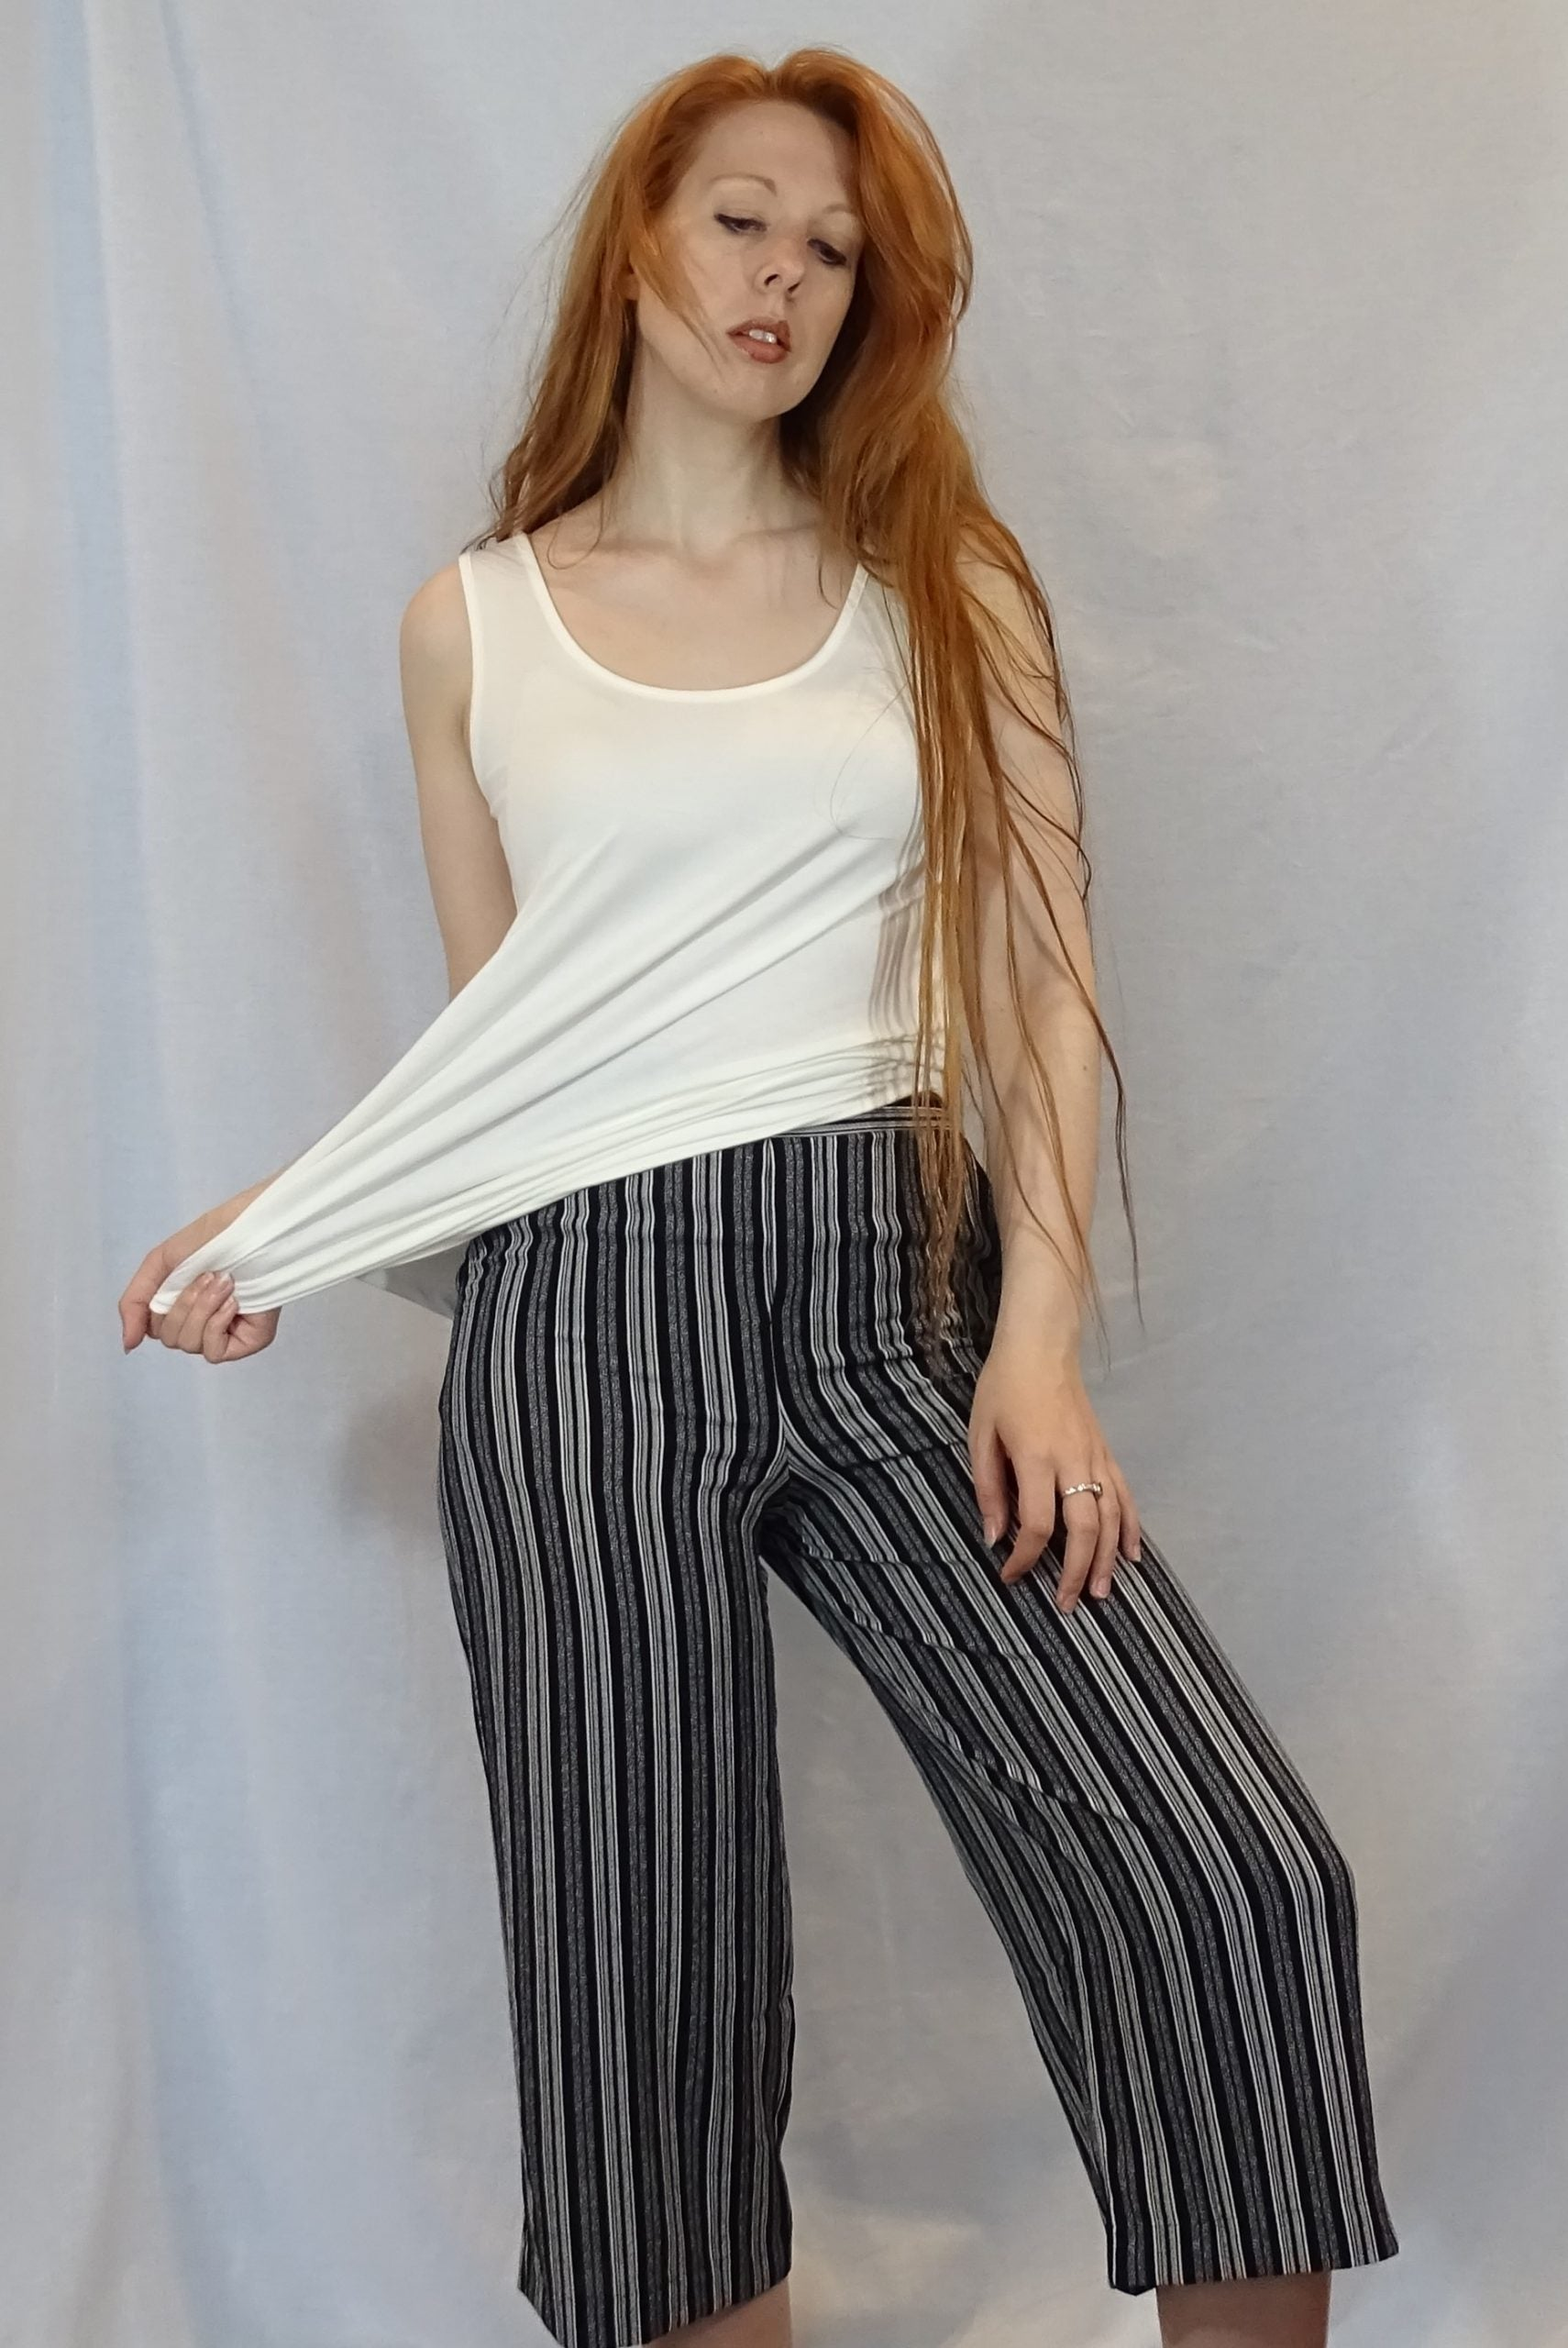 Light Summer Stripe Pants $25/each